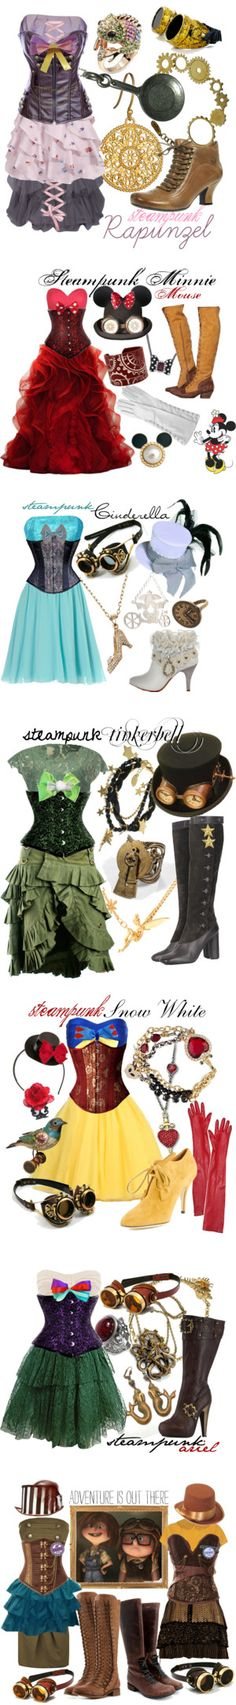 """Disney Steampunk"" by princesschandler on Polyvore"